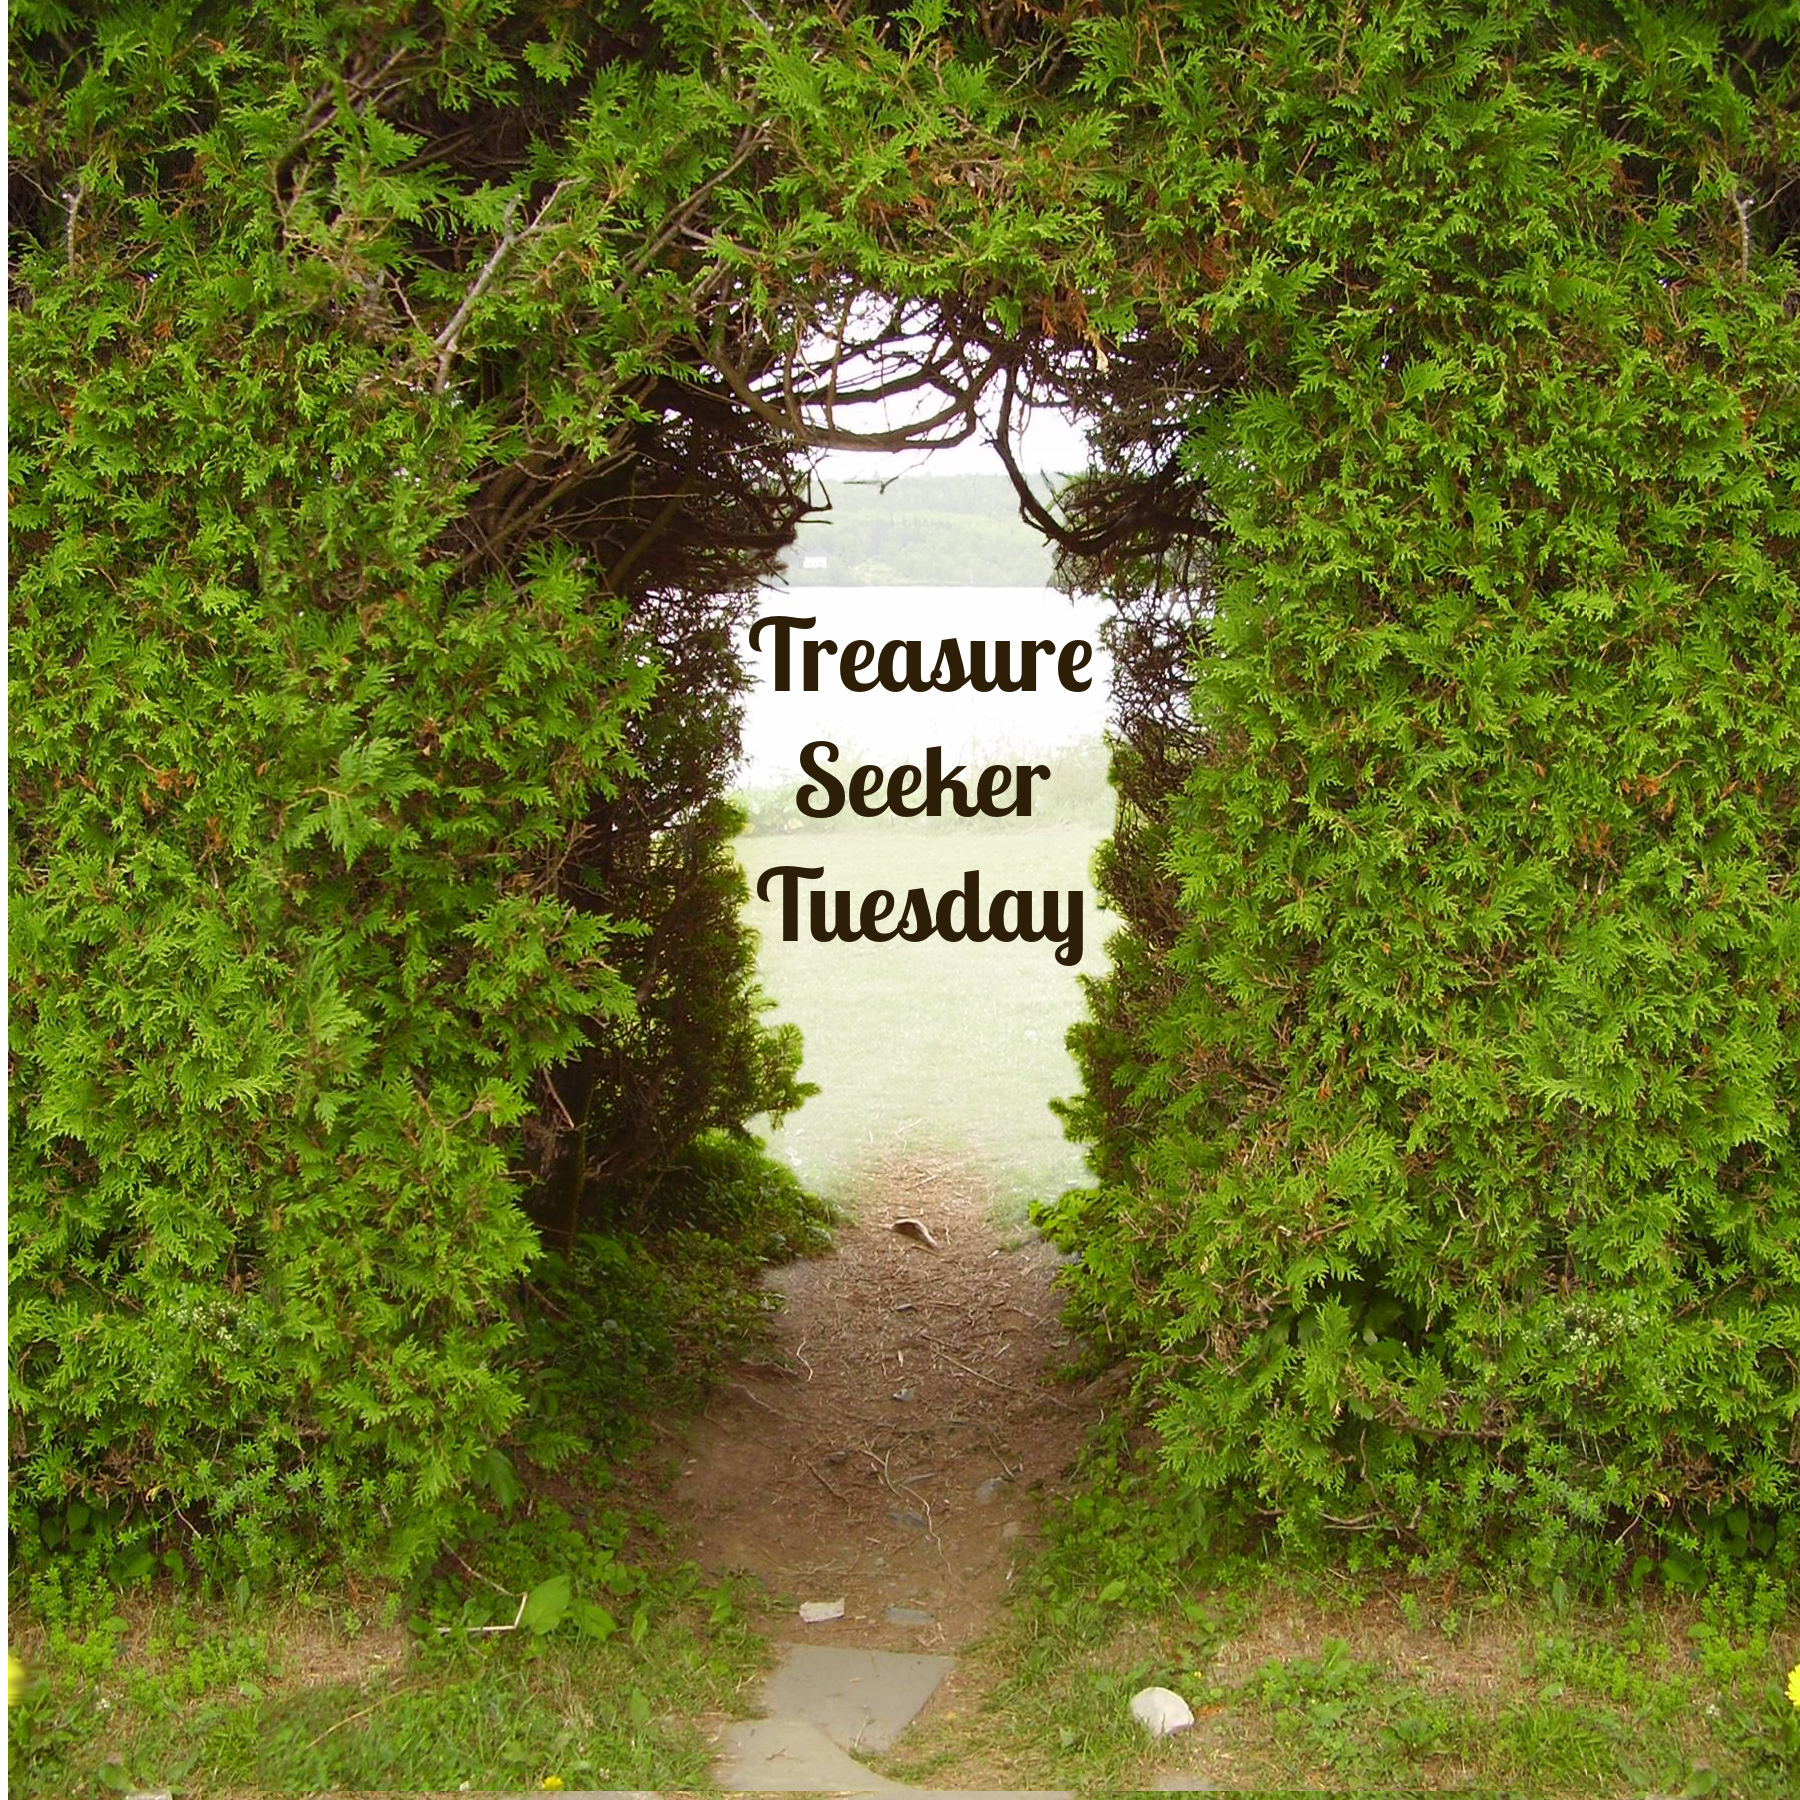 Treasure Seeker Tuesday: Spotlight on Kadi Oram